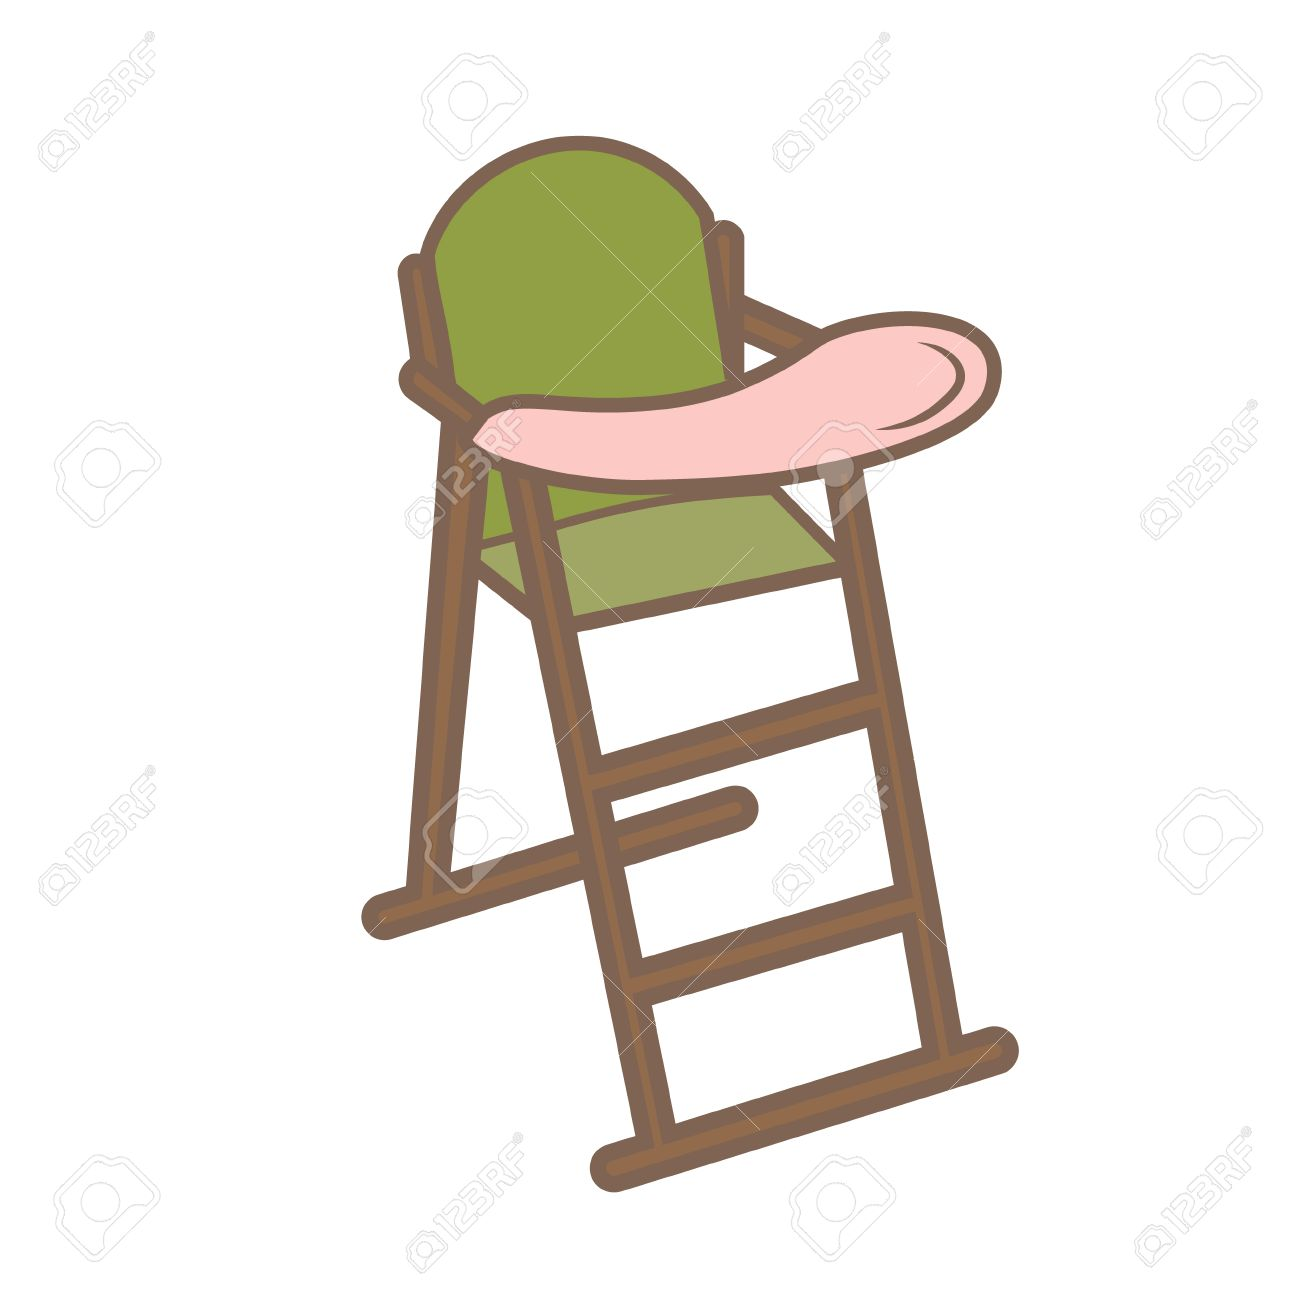 Baby high chair icon on white background. cartoon illustration.